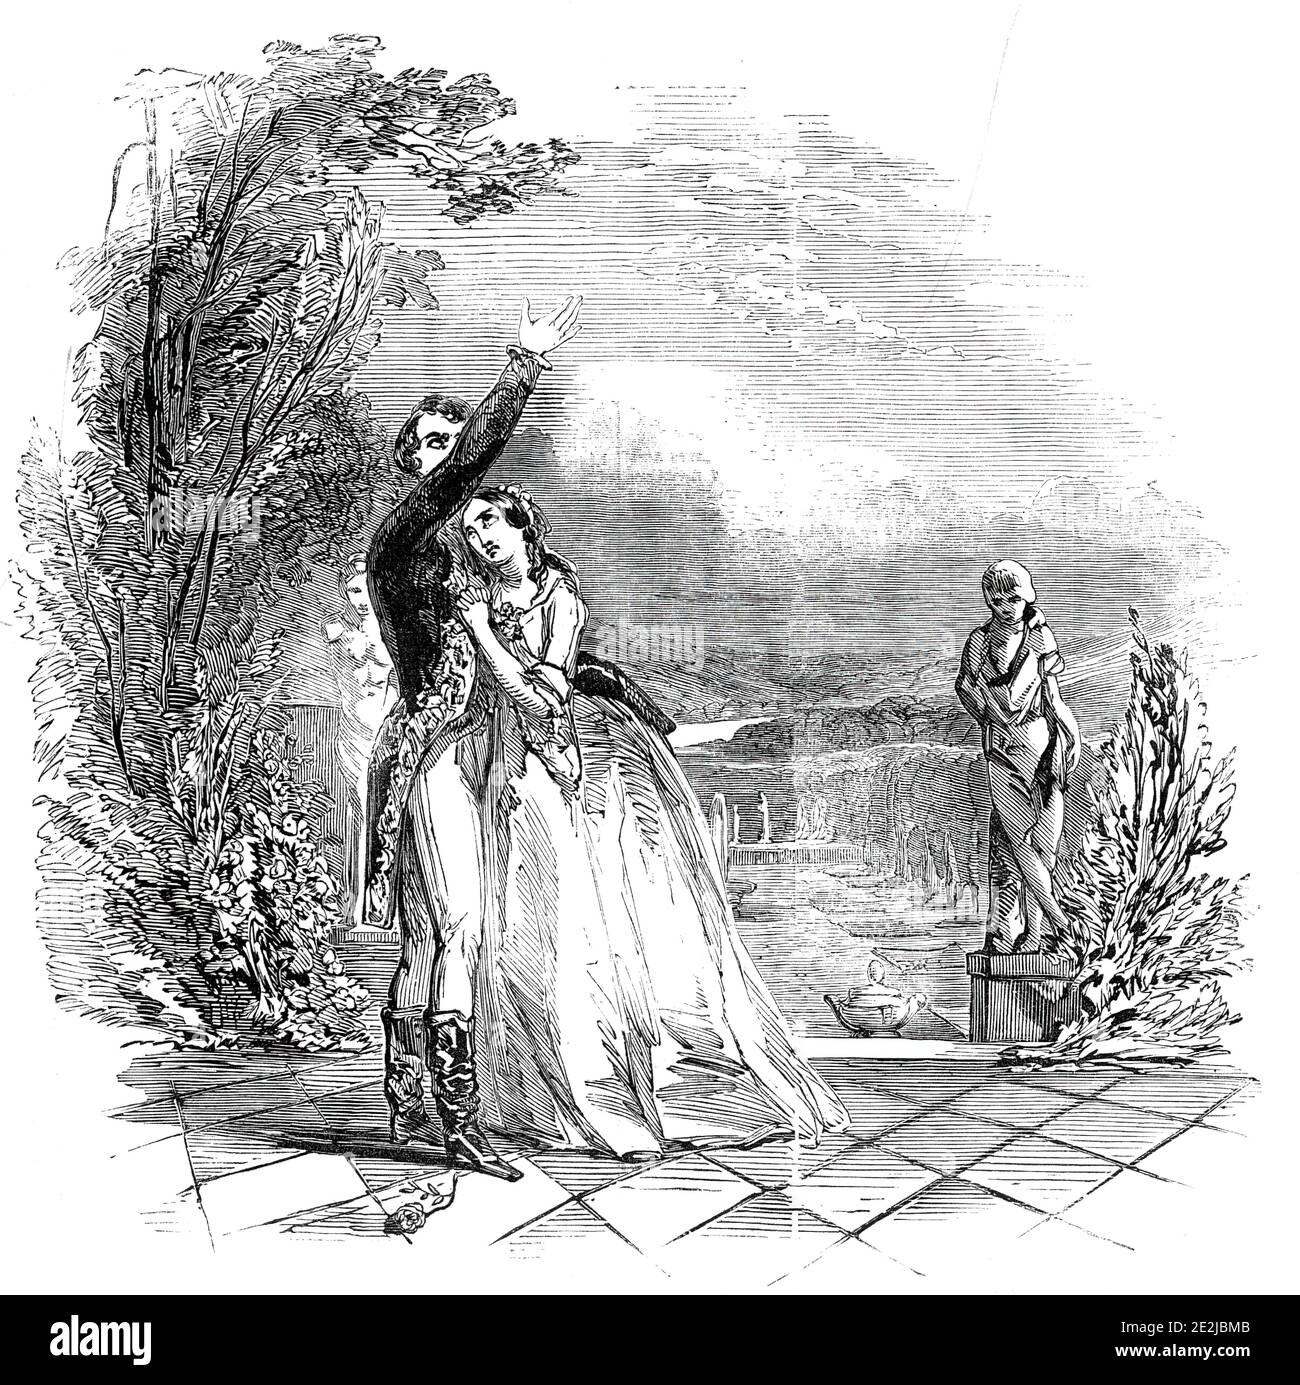 "Scene from ""The Lady of Lyons"" at the Haymarket Theatre, 1845. London stage production of ""The Lady of Lyons; or, Love and Pride"", a romantic melodrama written in 1838 by Edward Bulwer-Lytton, 1st Baron Lytton. '...the First Scene of the Second Act...Claude Melnotte (Mr. Anderson), pretending to be the Prince of Como, is speaking to Pauline (Miss Helen Fawcit) of his imaginary Palace...'. From ""Illustrated London News"", 1845, Vol VII. Stock Photo"